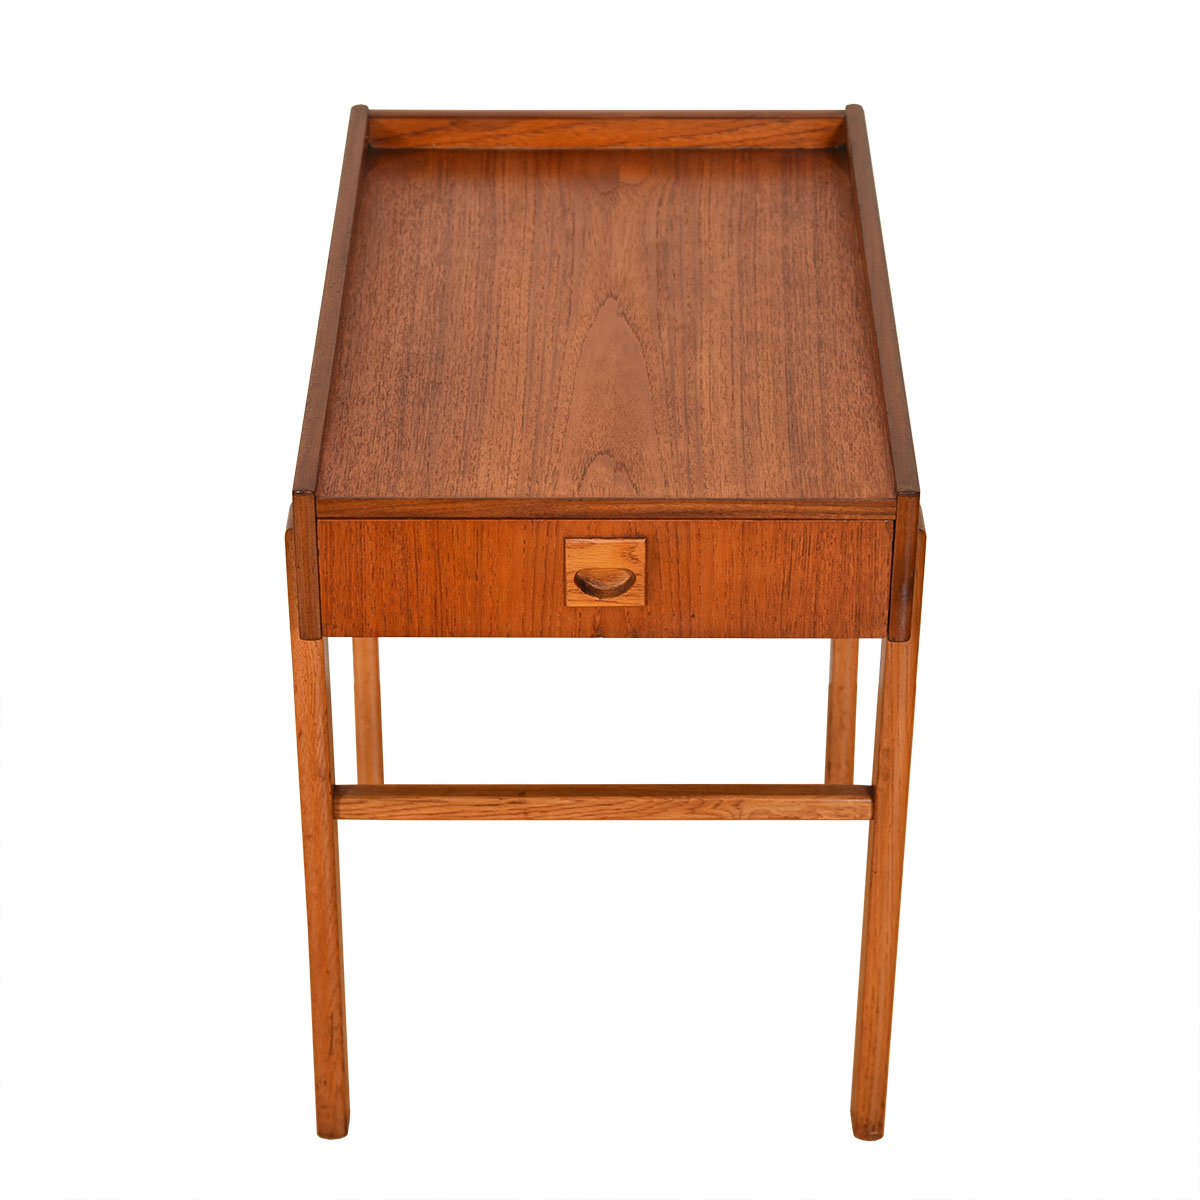 Danish Modern Teak Raised Edge Accent Table w/ Drawer